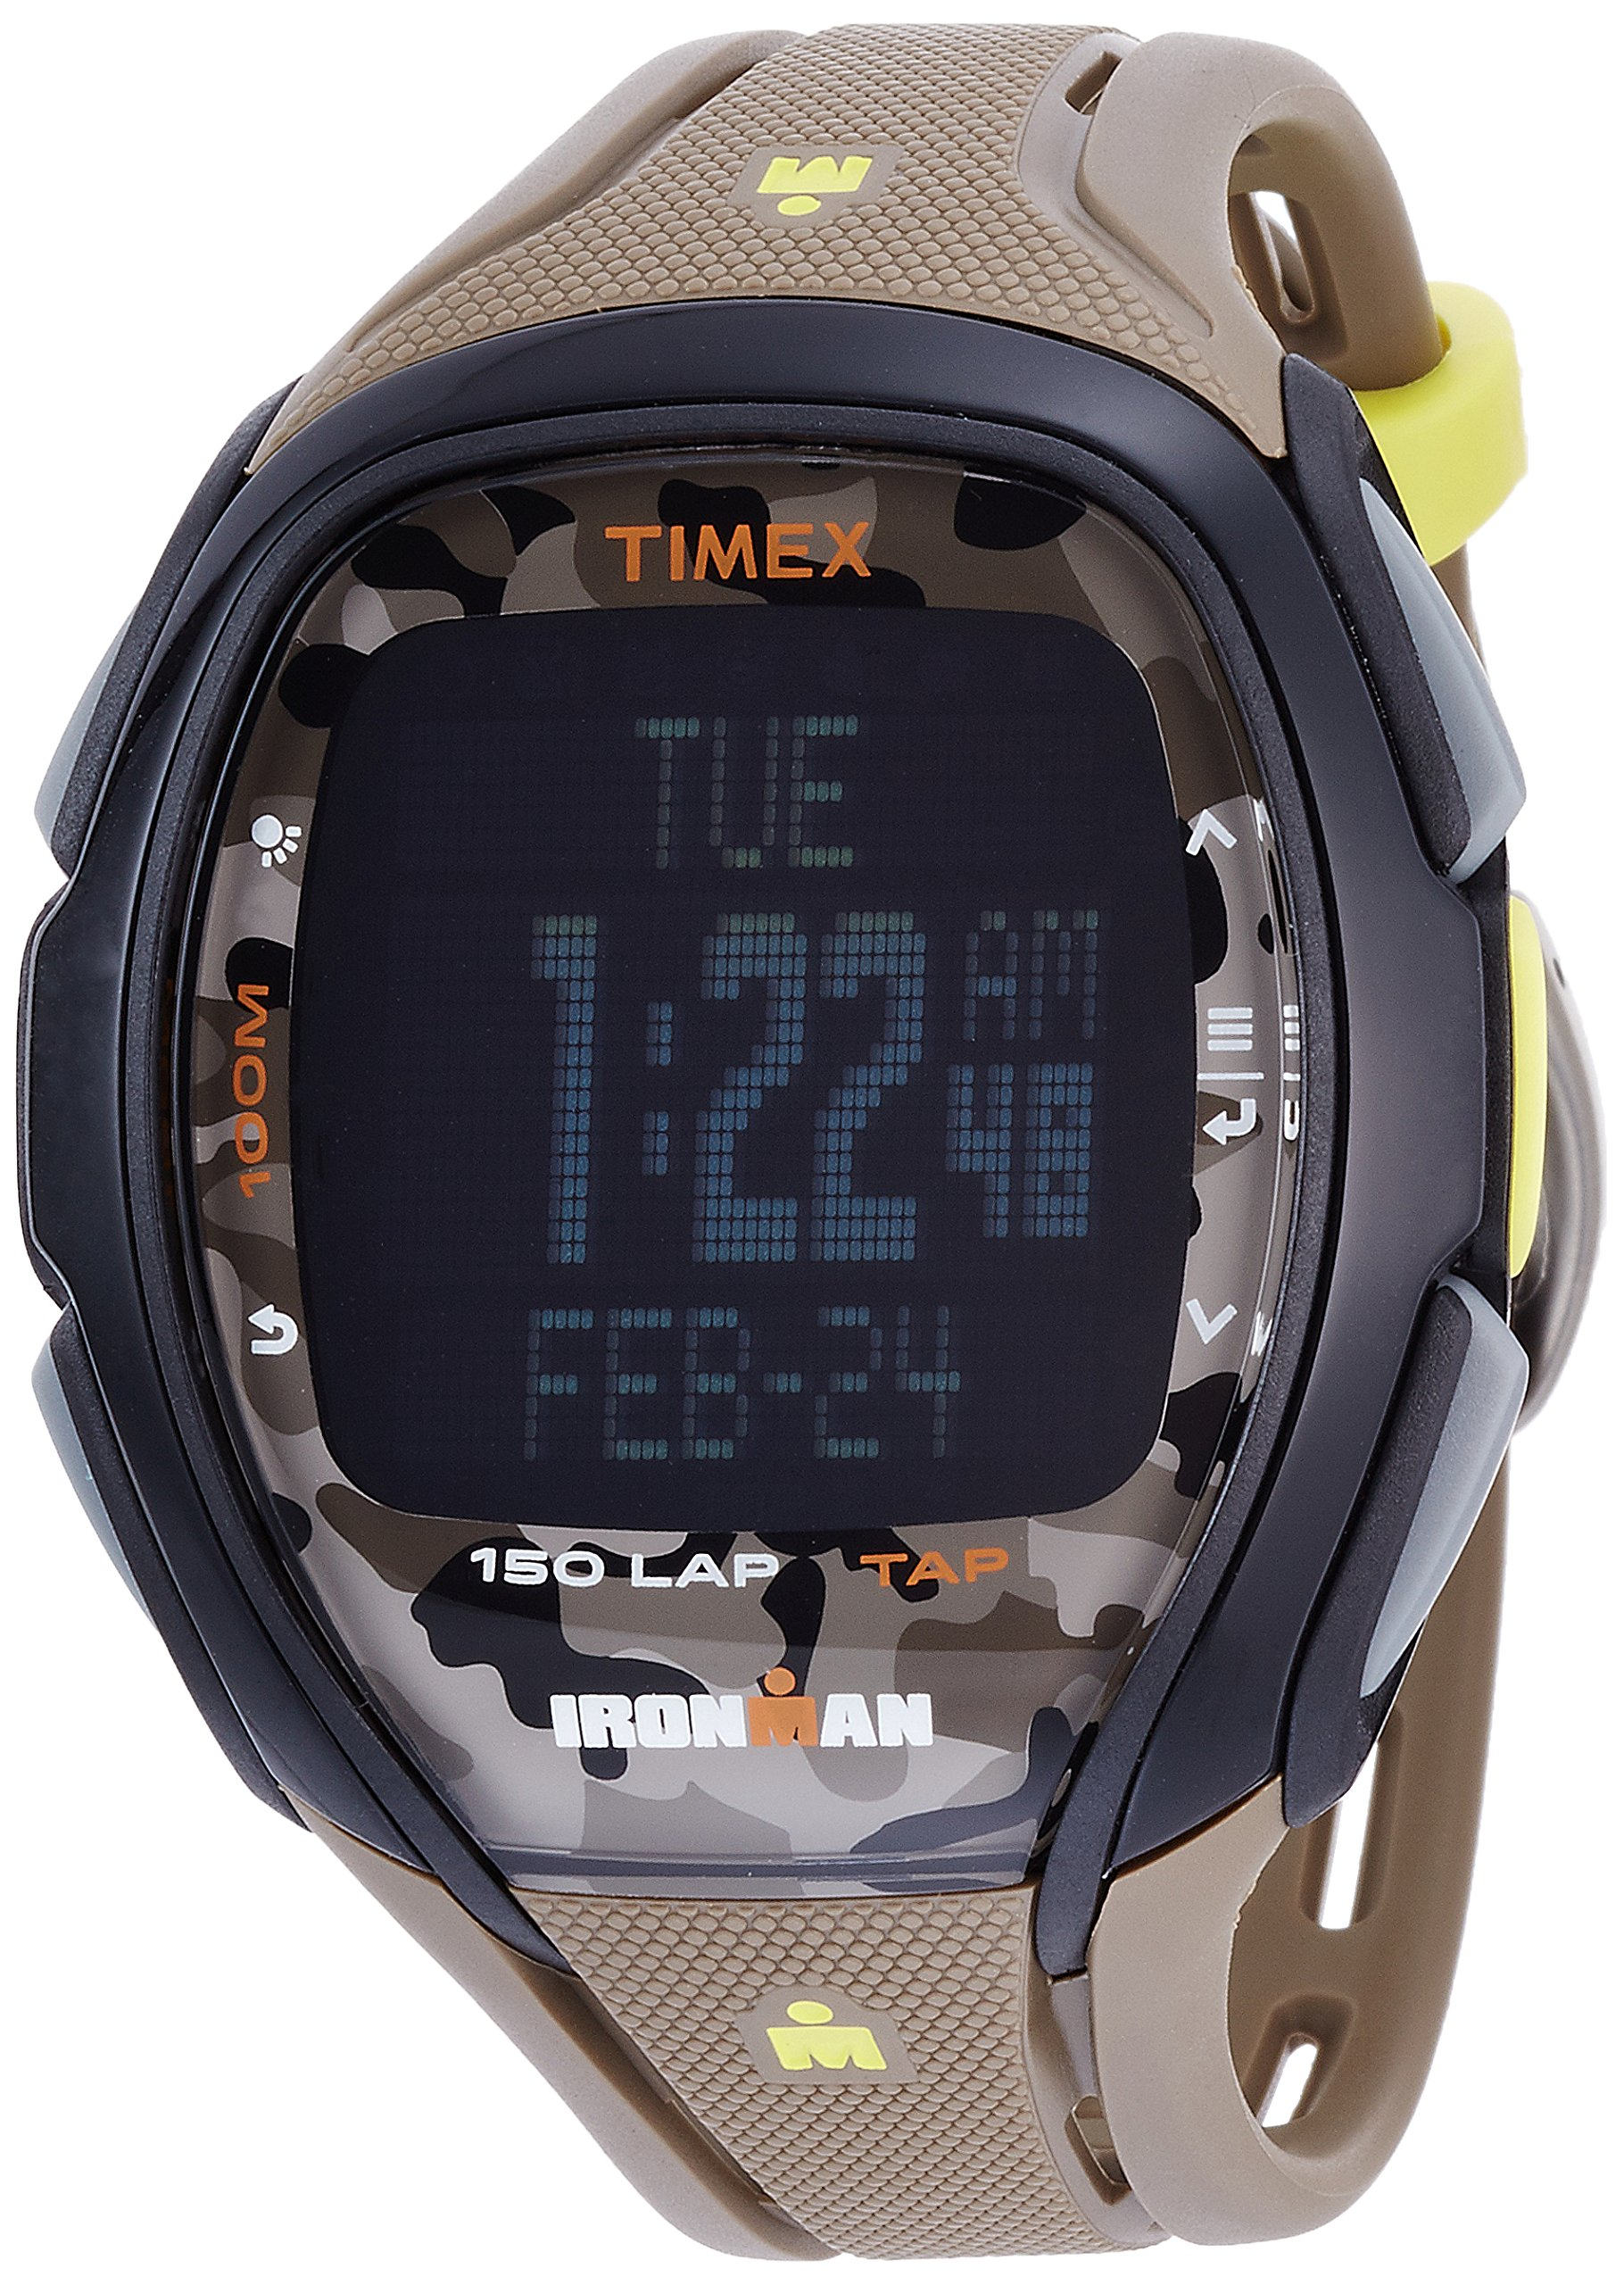 Timex TW5M01100 Ironman 150-Lap Full Size Sleek Camo Resin Strap Chronograph Watch by Timex